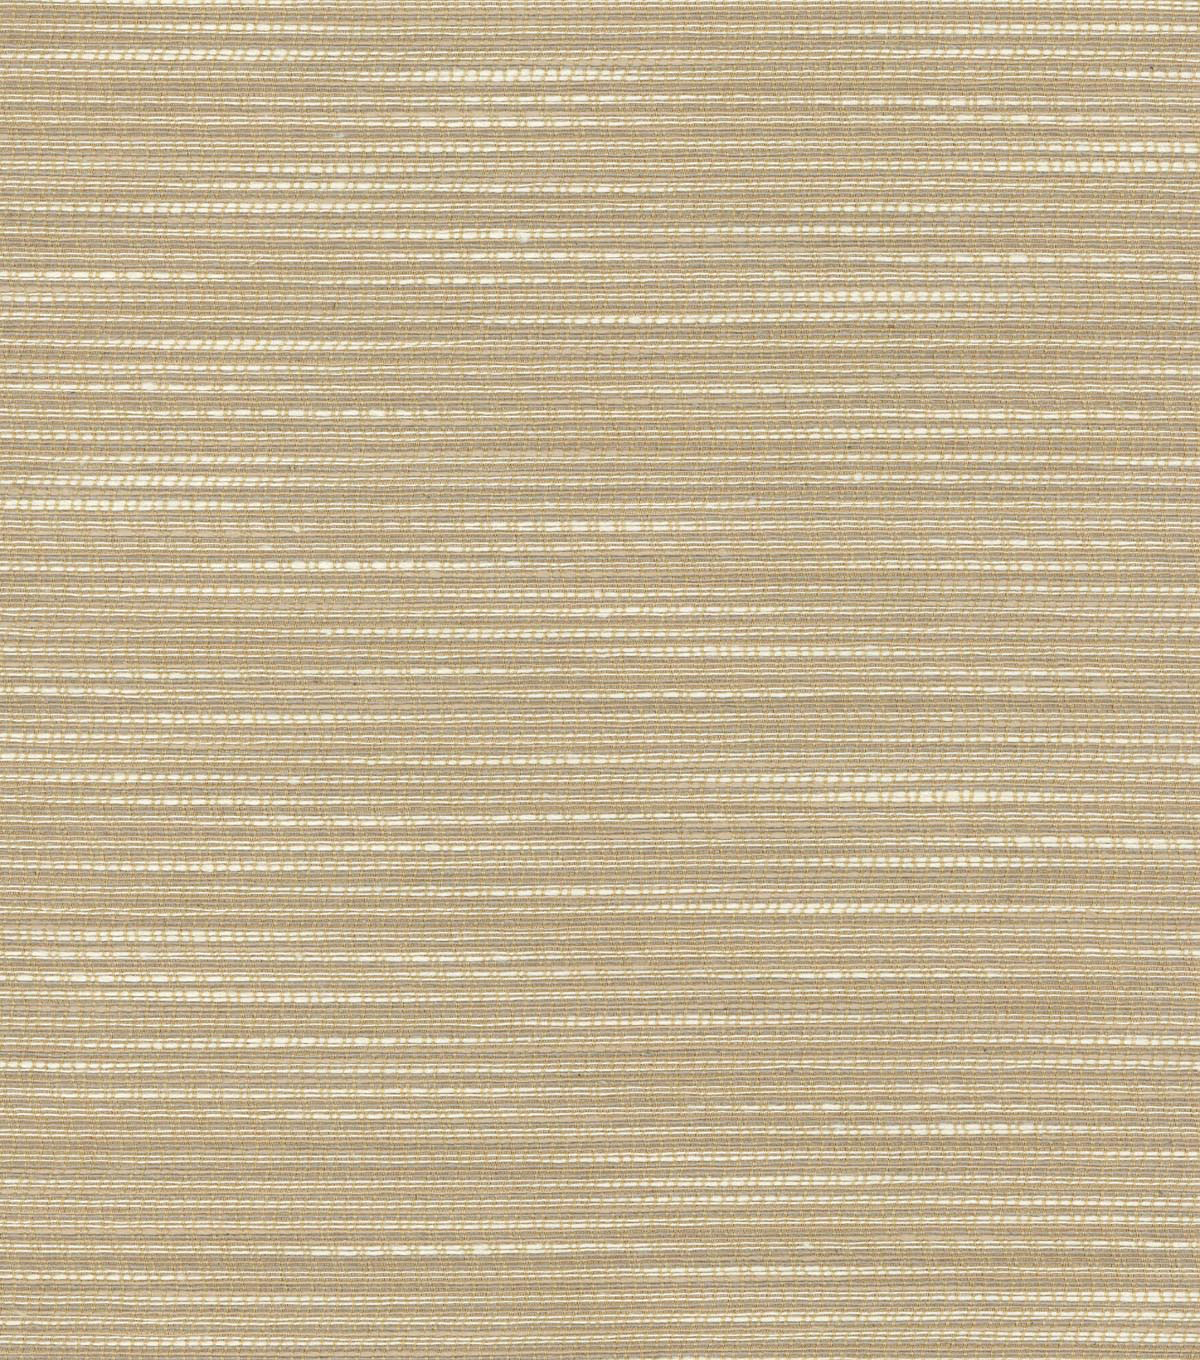 Home Decor 8\u0022x8\u0022 Swatch Fabric-PK Lifestyles Shimmy Driftwood